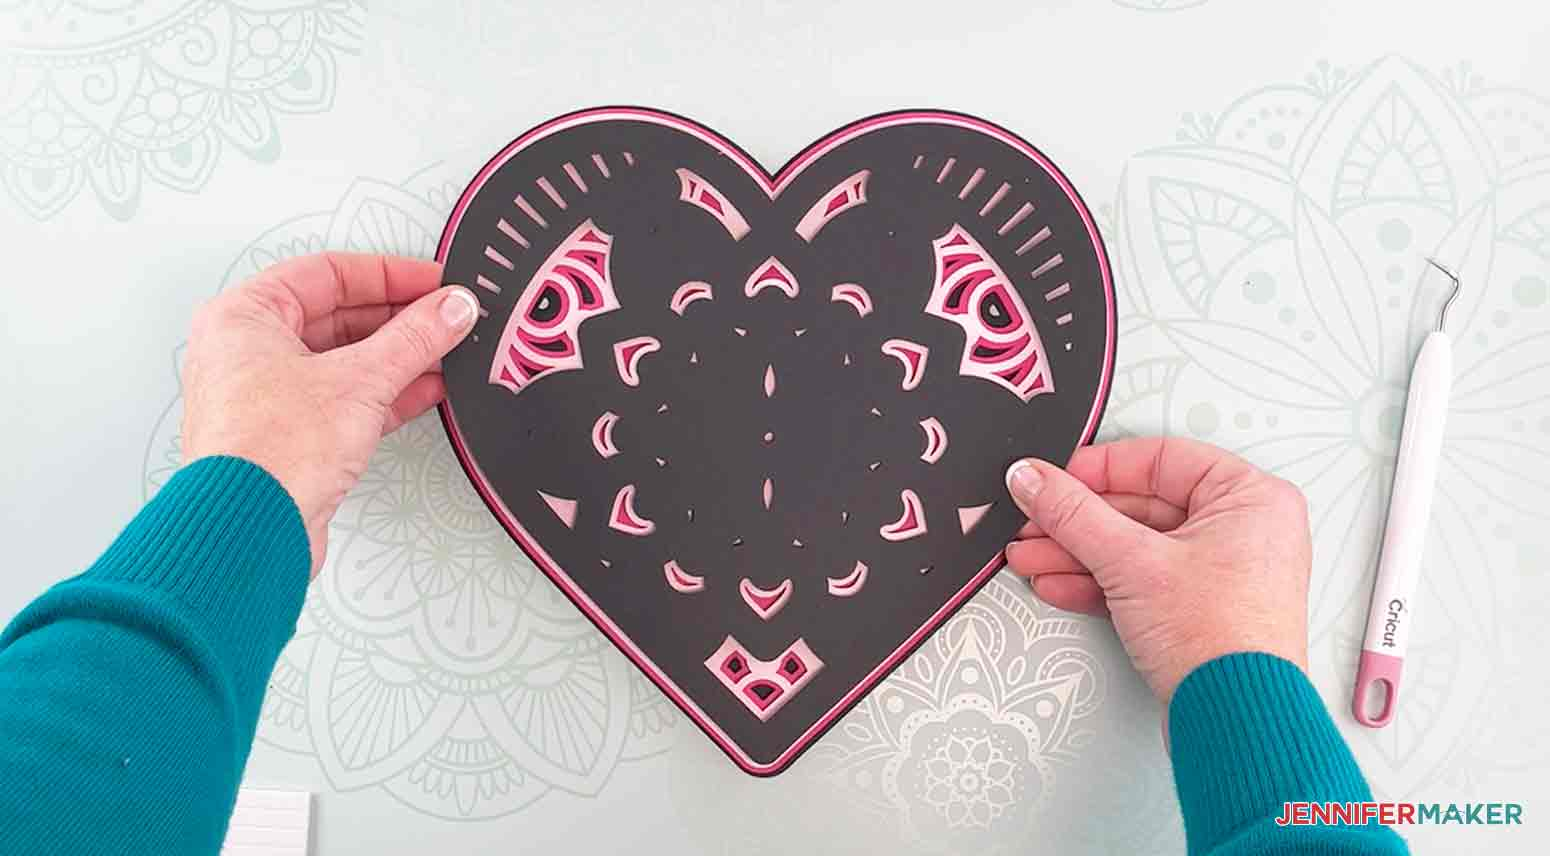 Place layer three onto layer four to make my heart mandala